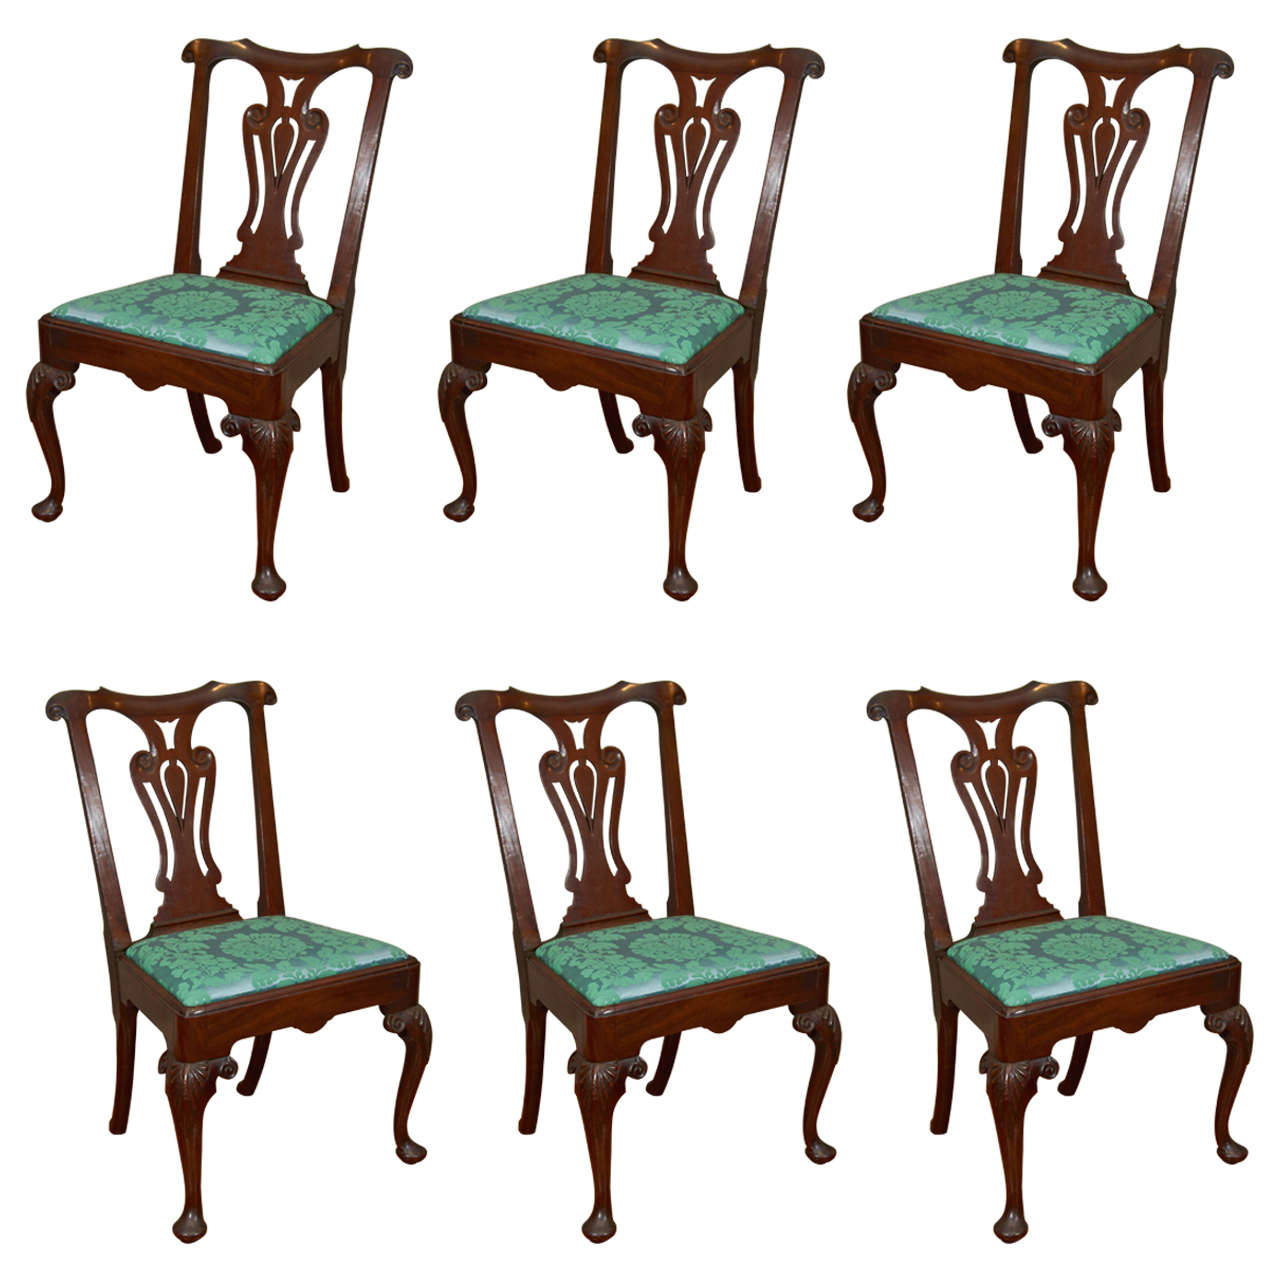 Best Kitchen Gallery: Set Of Six Irish 18th Century Georgian Dining Chairs For Sale At 1stdibs of Dining Chairs For Sale  on rachelxblog.com